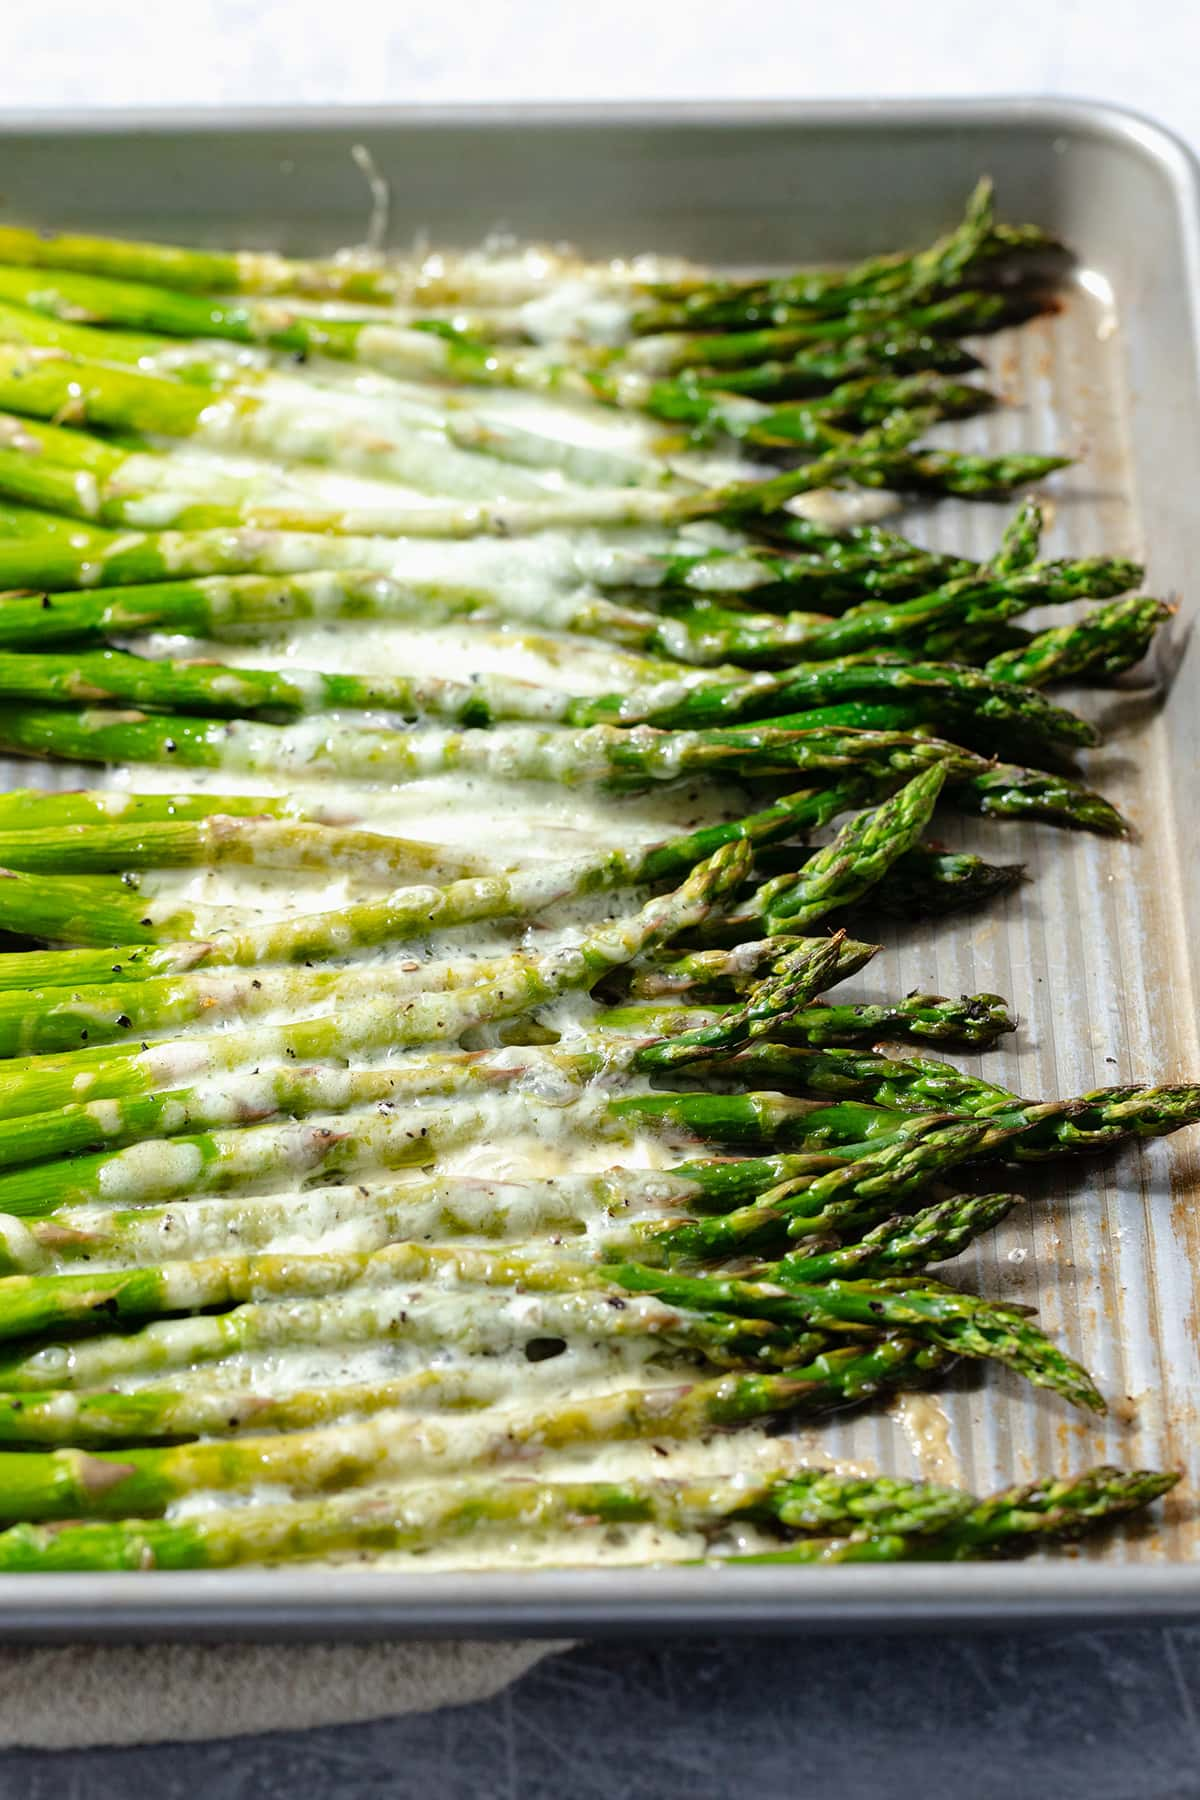 Roasted asparagus spears on a baking sheet with cheese sprinkled on that has melted in the oven.